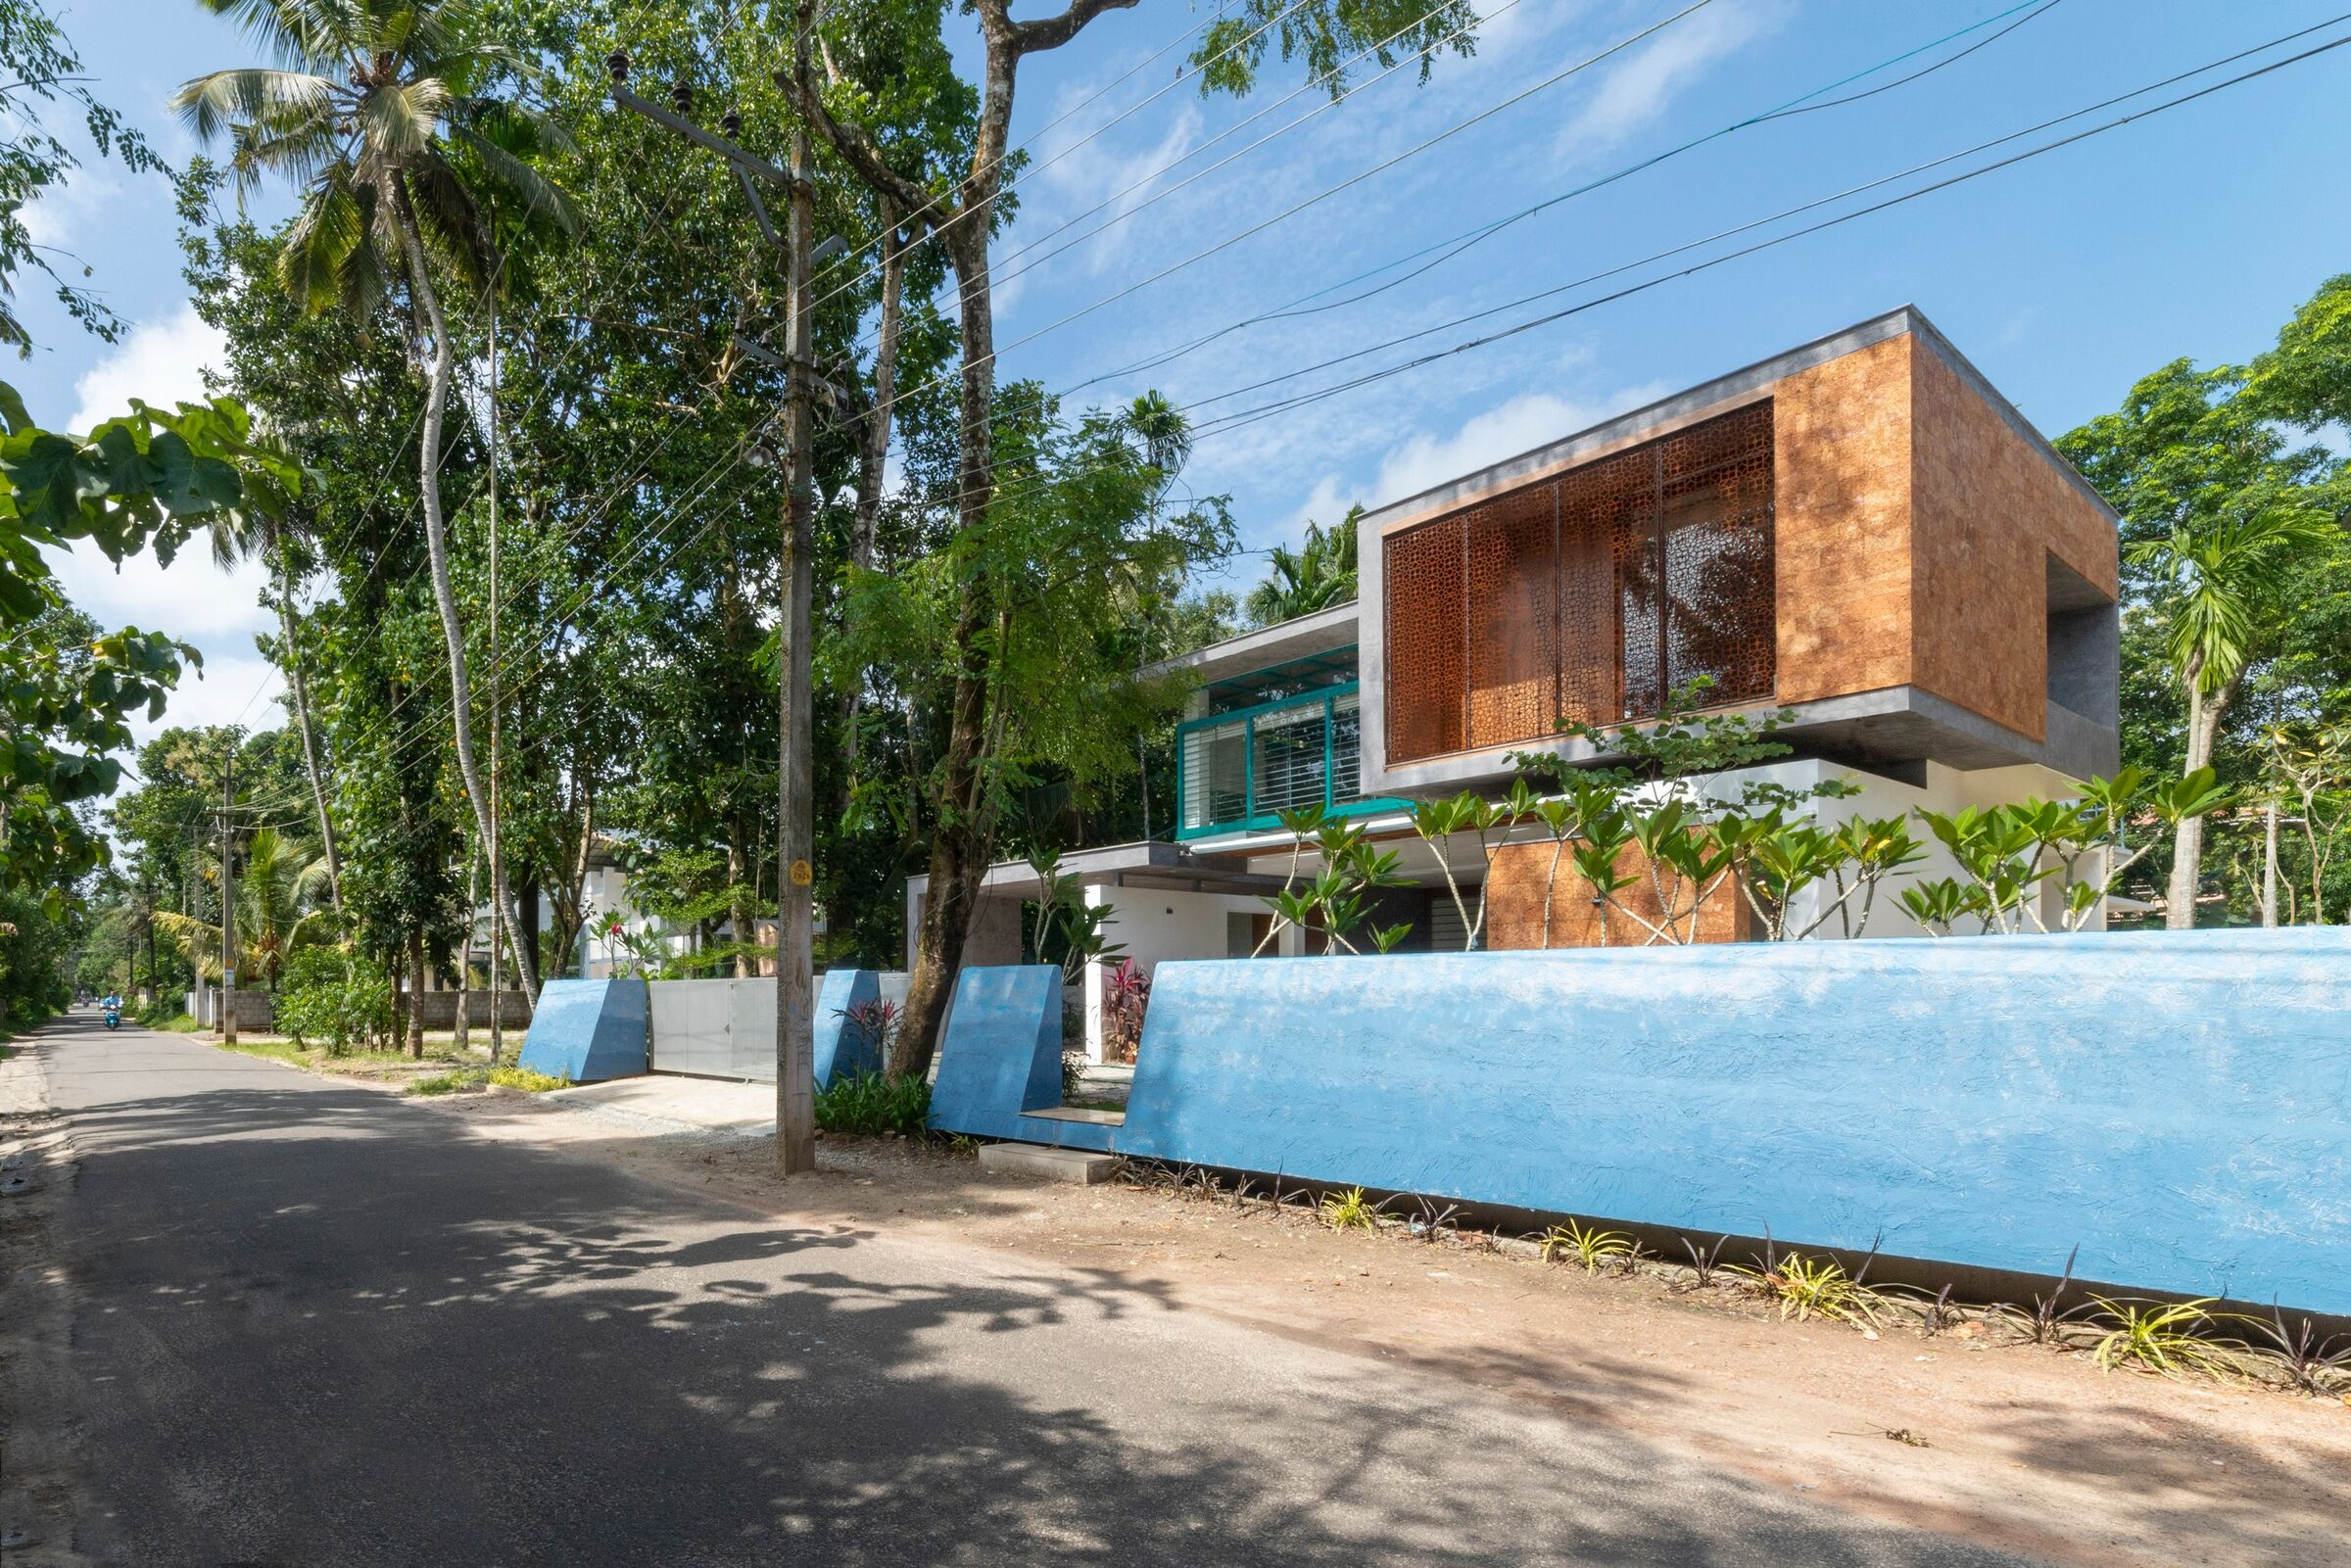 Manjadi House Of The Bead Tree No Architects Designers And Social Artists Media Photos And Videos 2 Archello